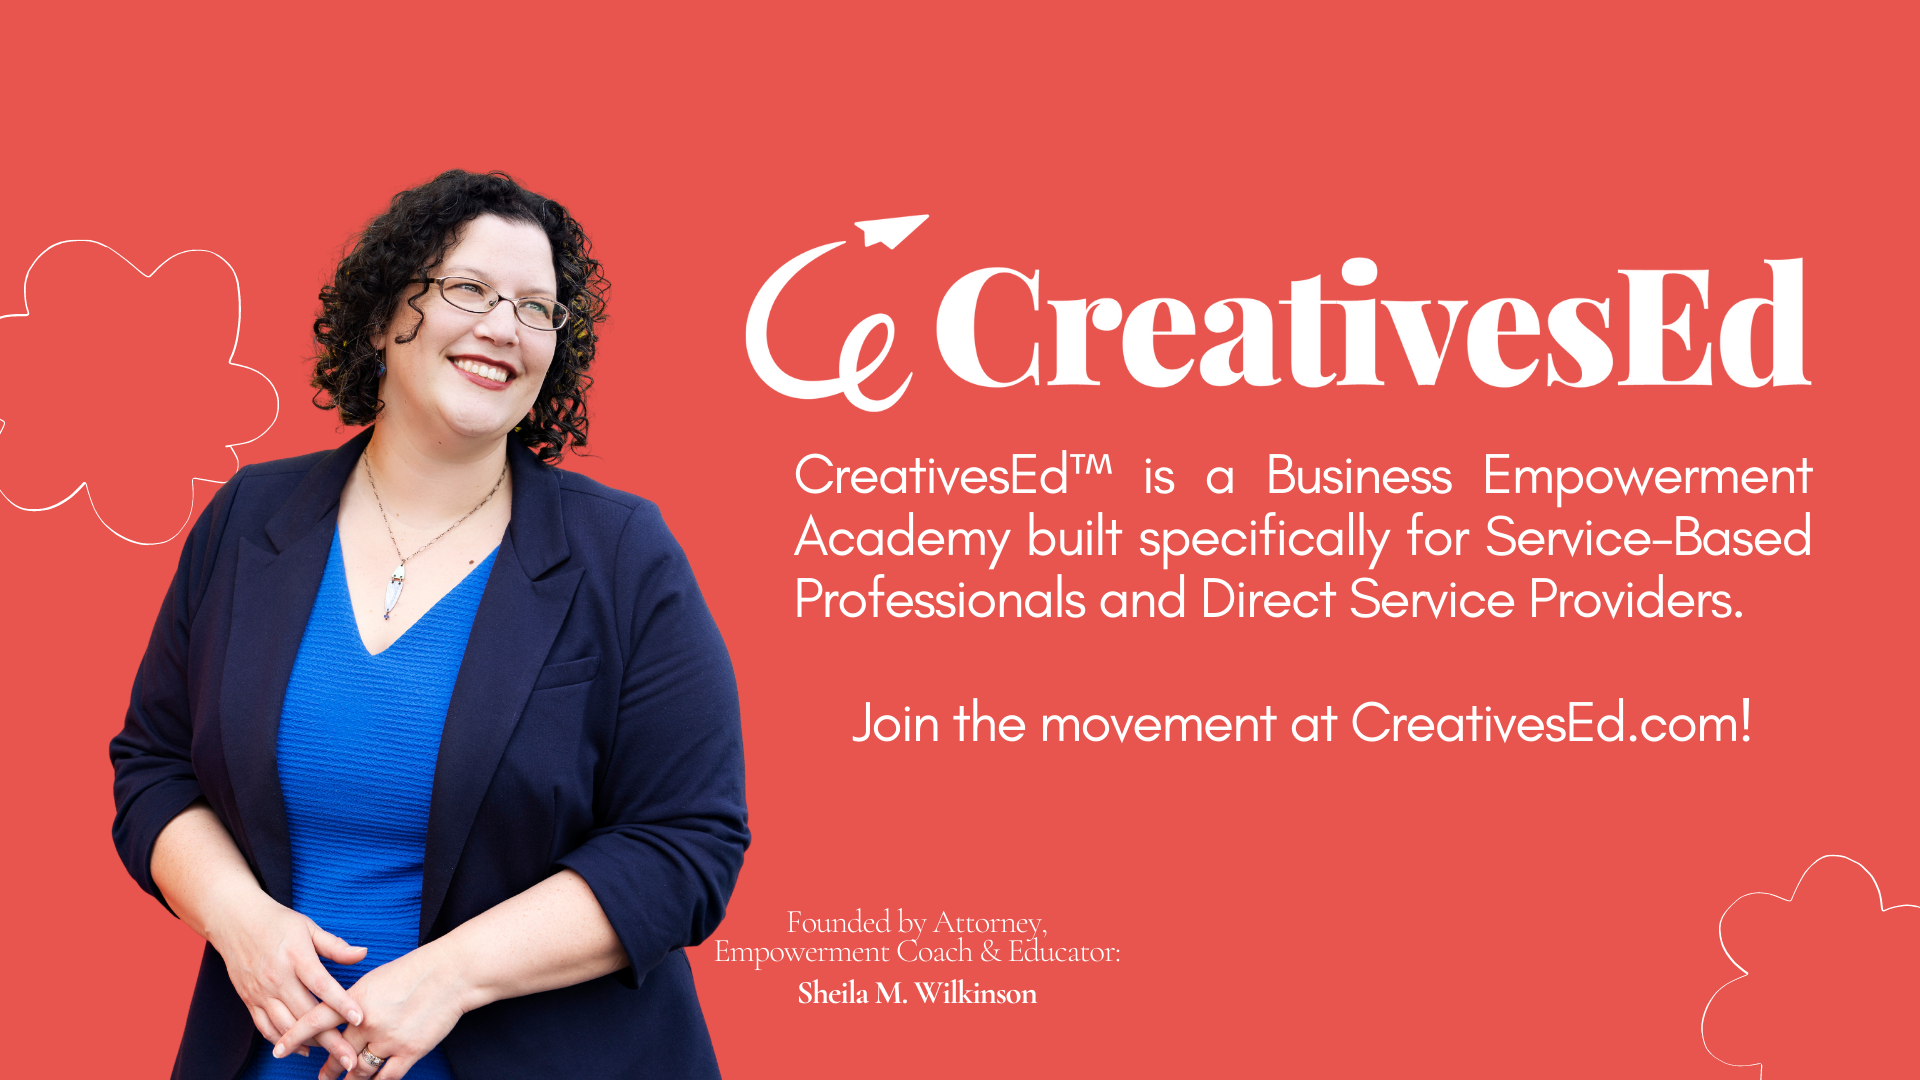 CreativesEd™ is a Business Empowerment Academy built specifically for Service-Based Professionals and Direct Service Providers.  Join the movement at CreativesEd.com!